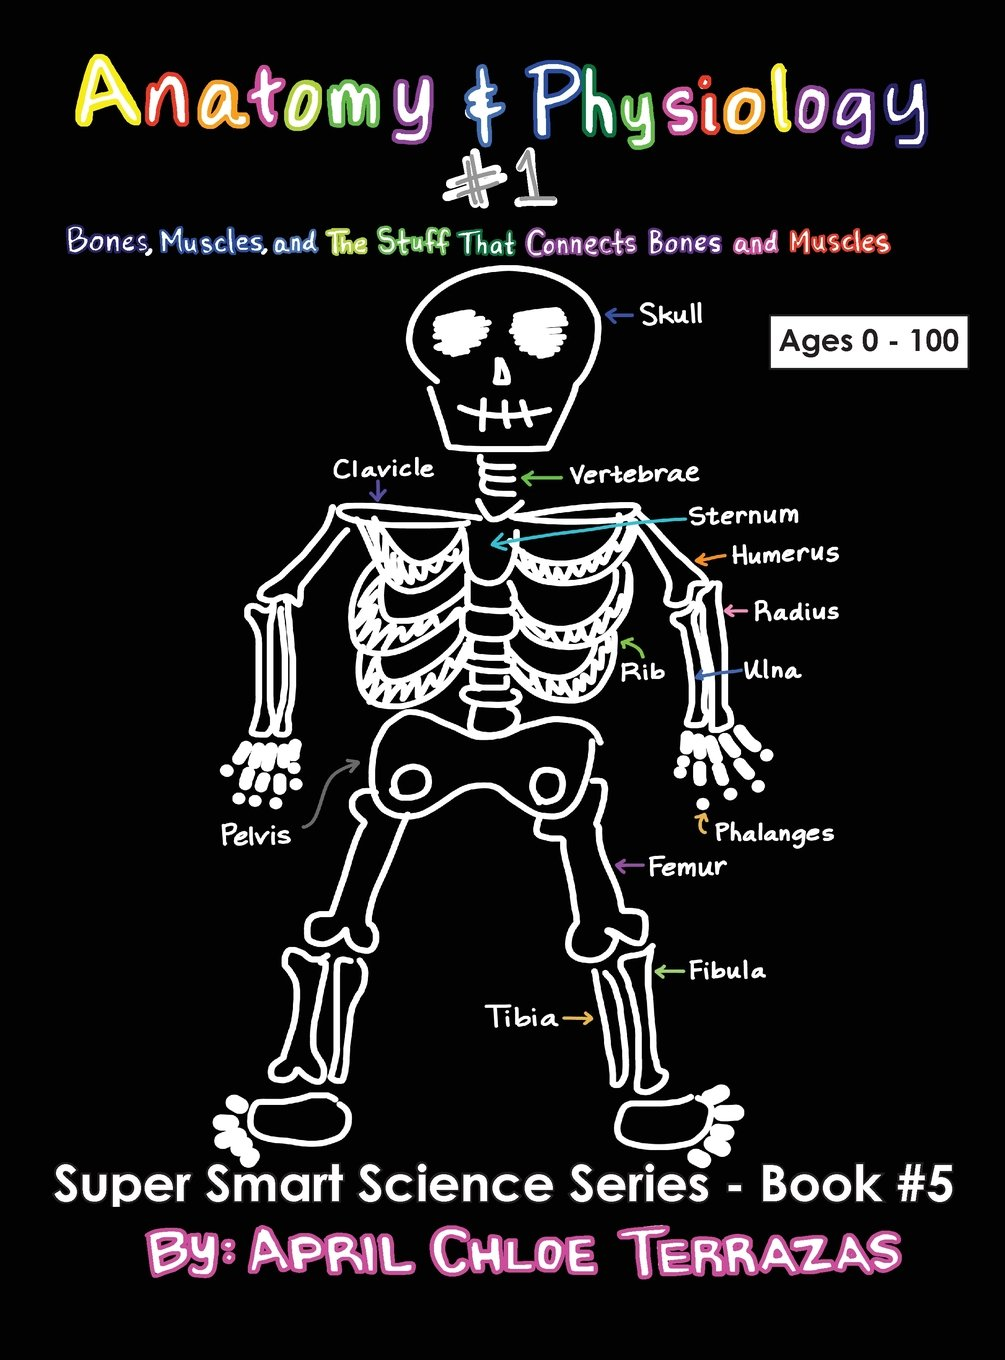 Anatomy & Physiology, Part 1: Bones, Muscles, and the Stuff That ...